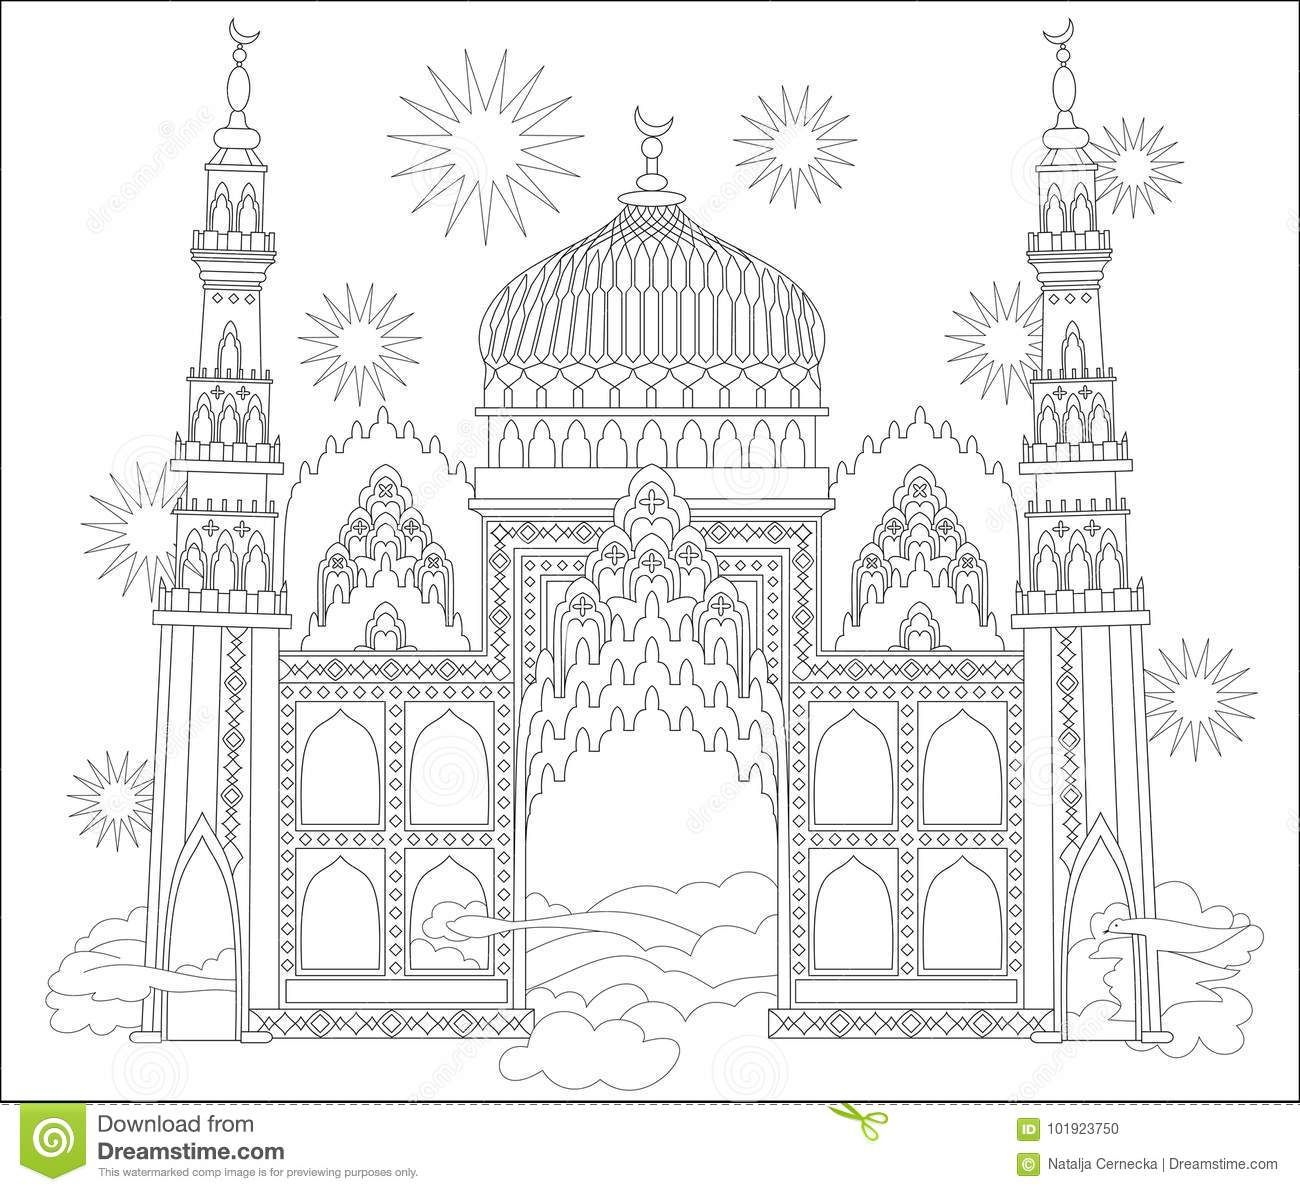 Black And White Page For Coloring Fantastic Arab Castle From A Fairy Tale Worksheet For